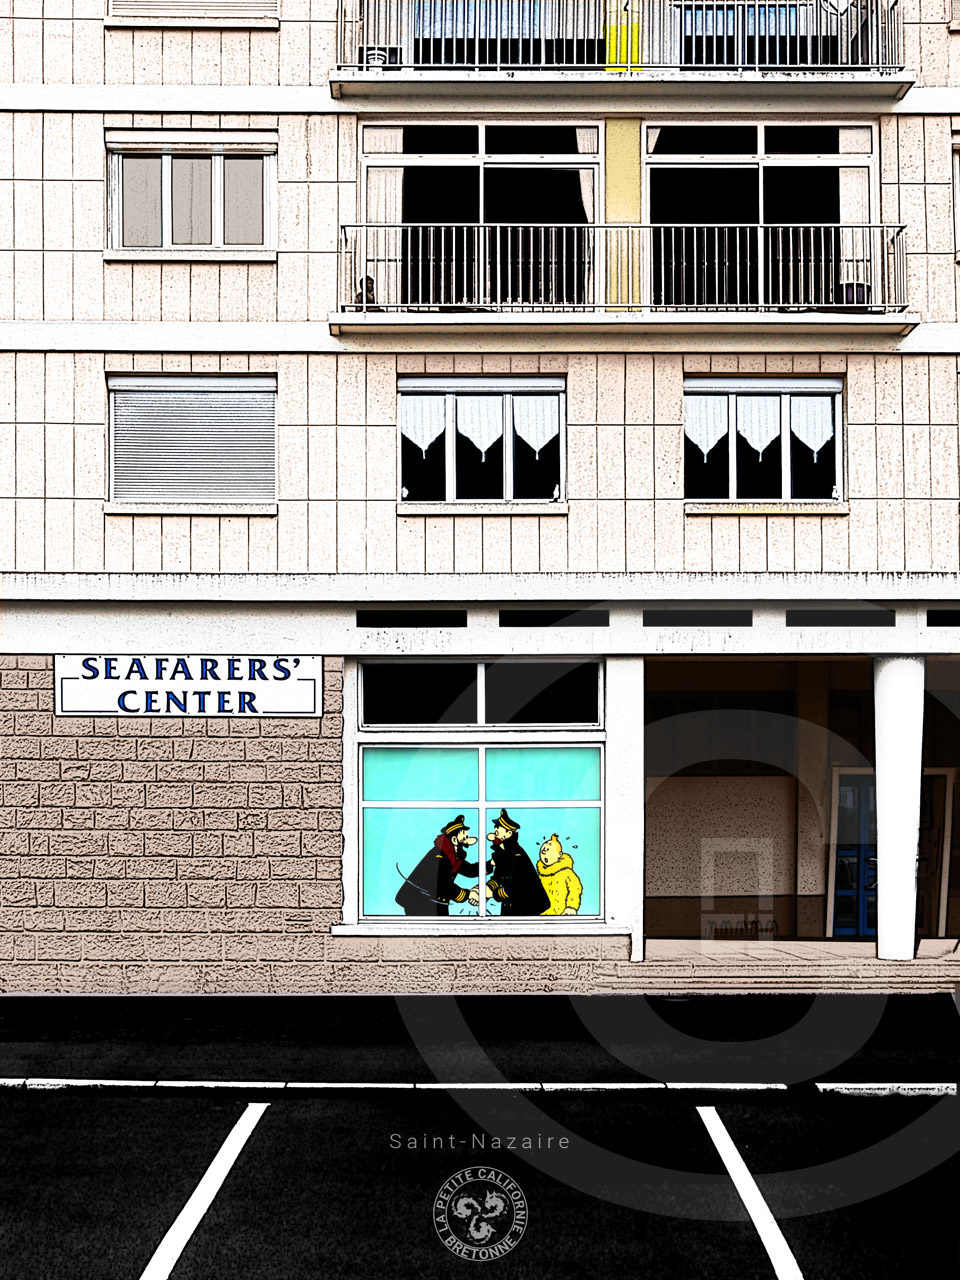 Affiche Seafarer's center - Saint-Nazaire